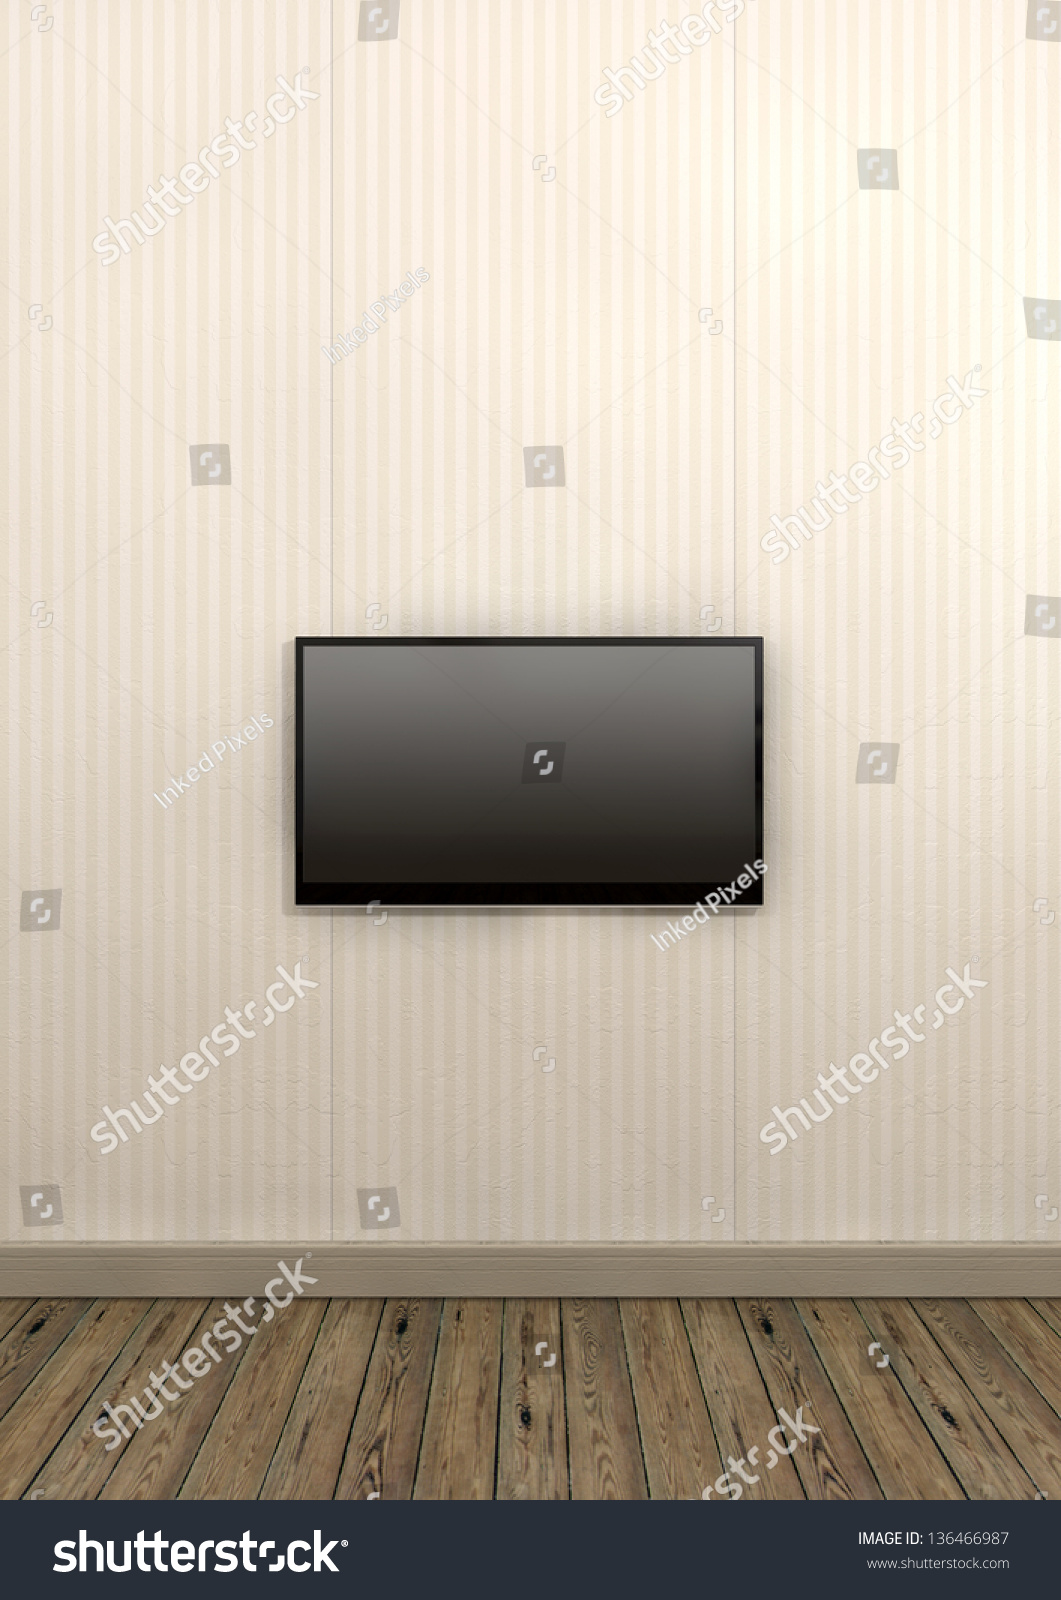 An Old Styled Striped Wallpapered Wall With Brown Skirting And Wooden Floors With A Modern Lcd Television Mounted On The Wall Stock Photo ...